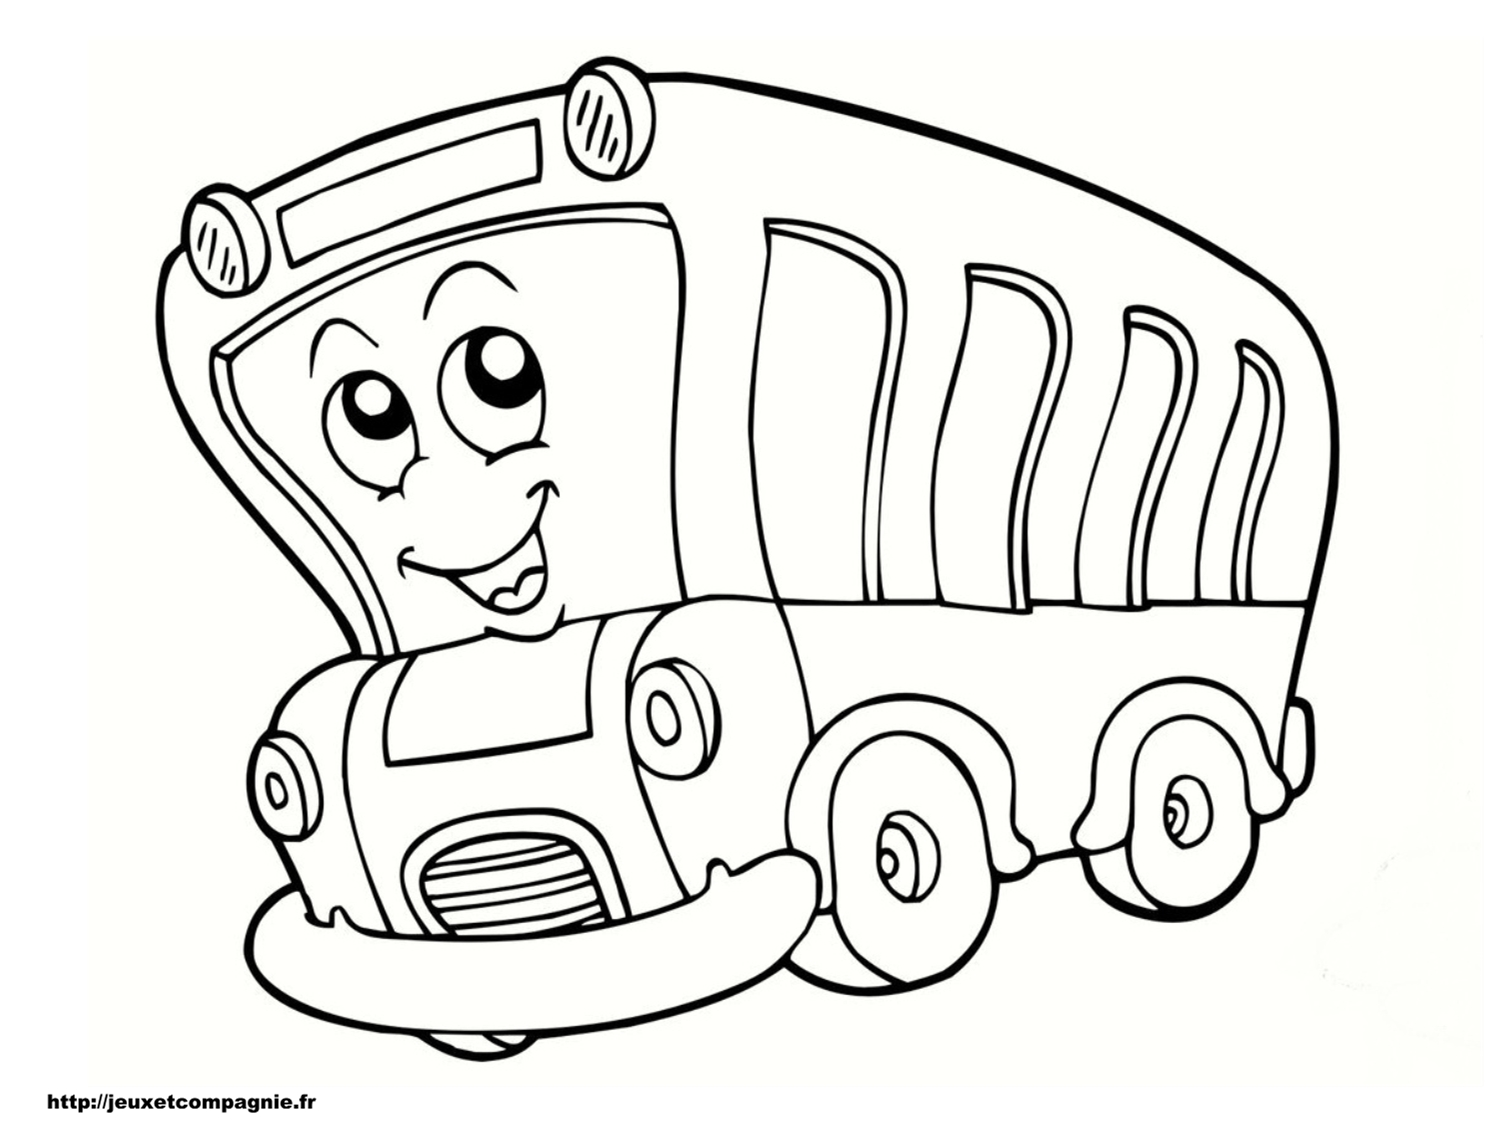 Coloriages de v hicules - Car coloriage ...